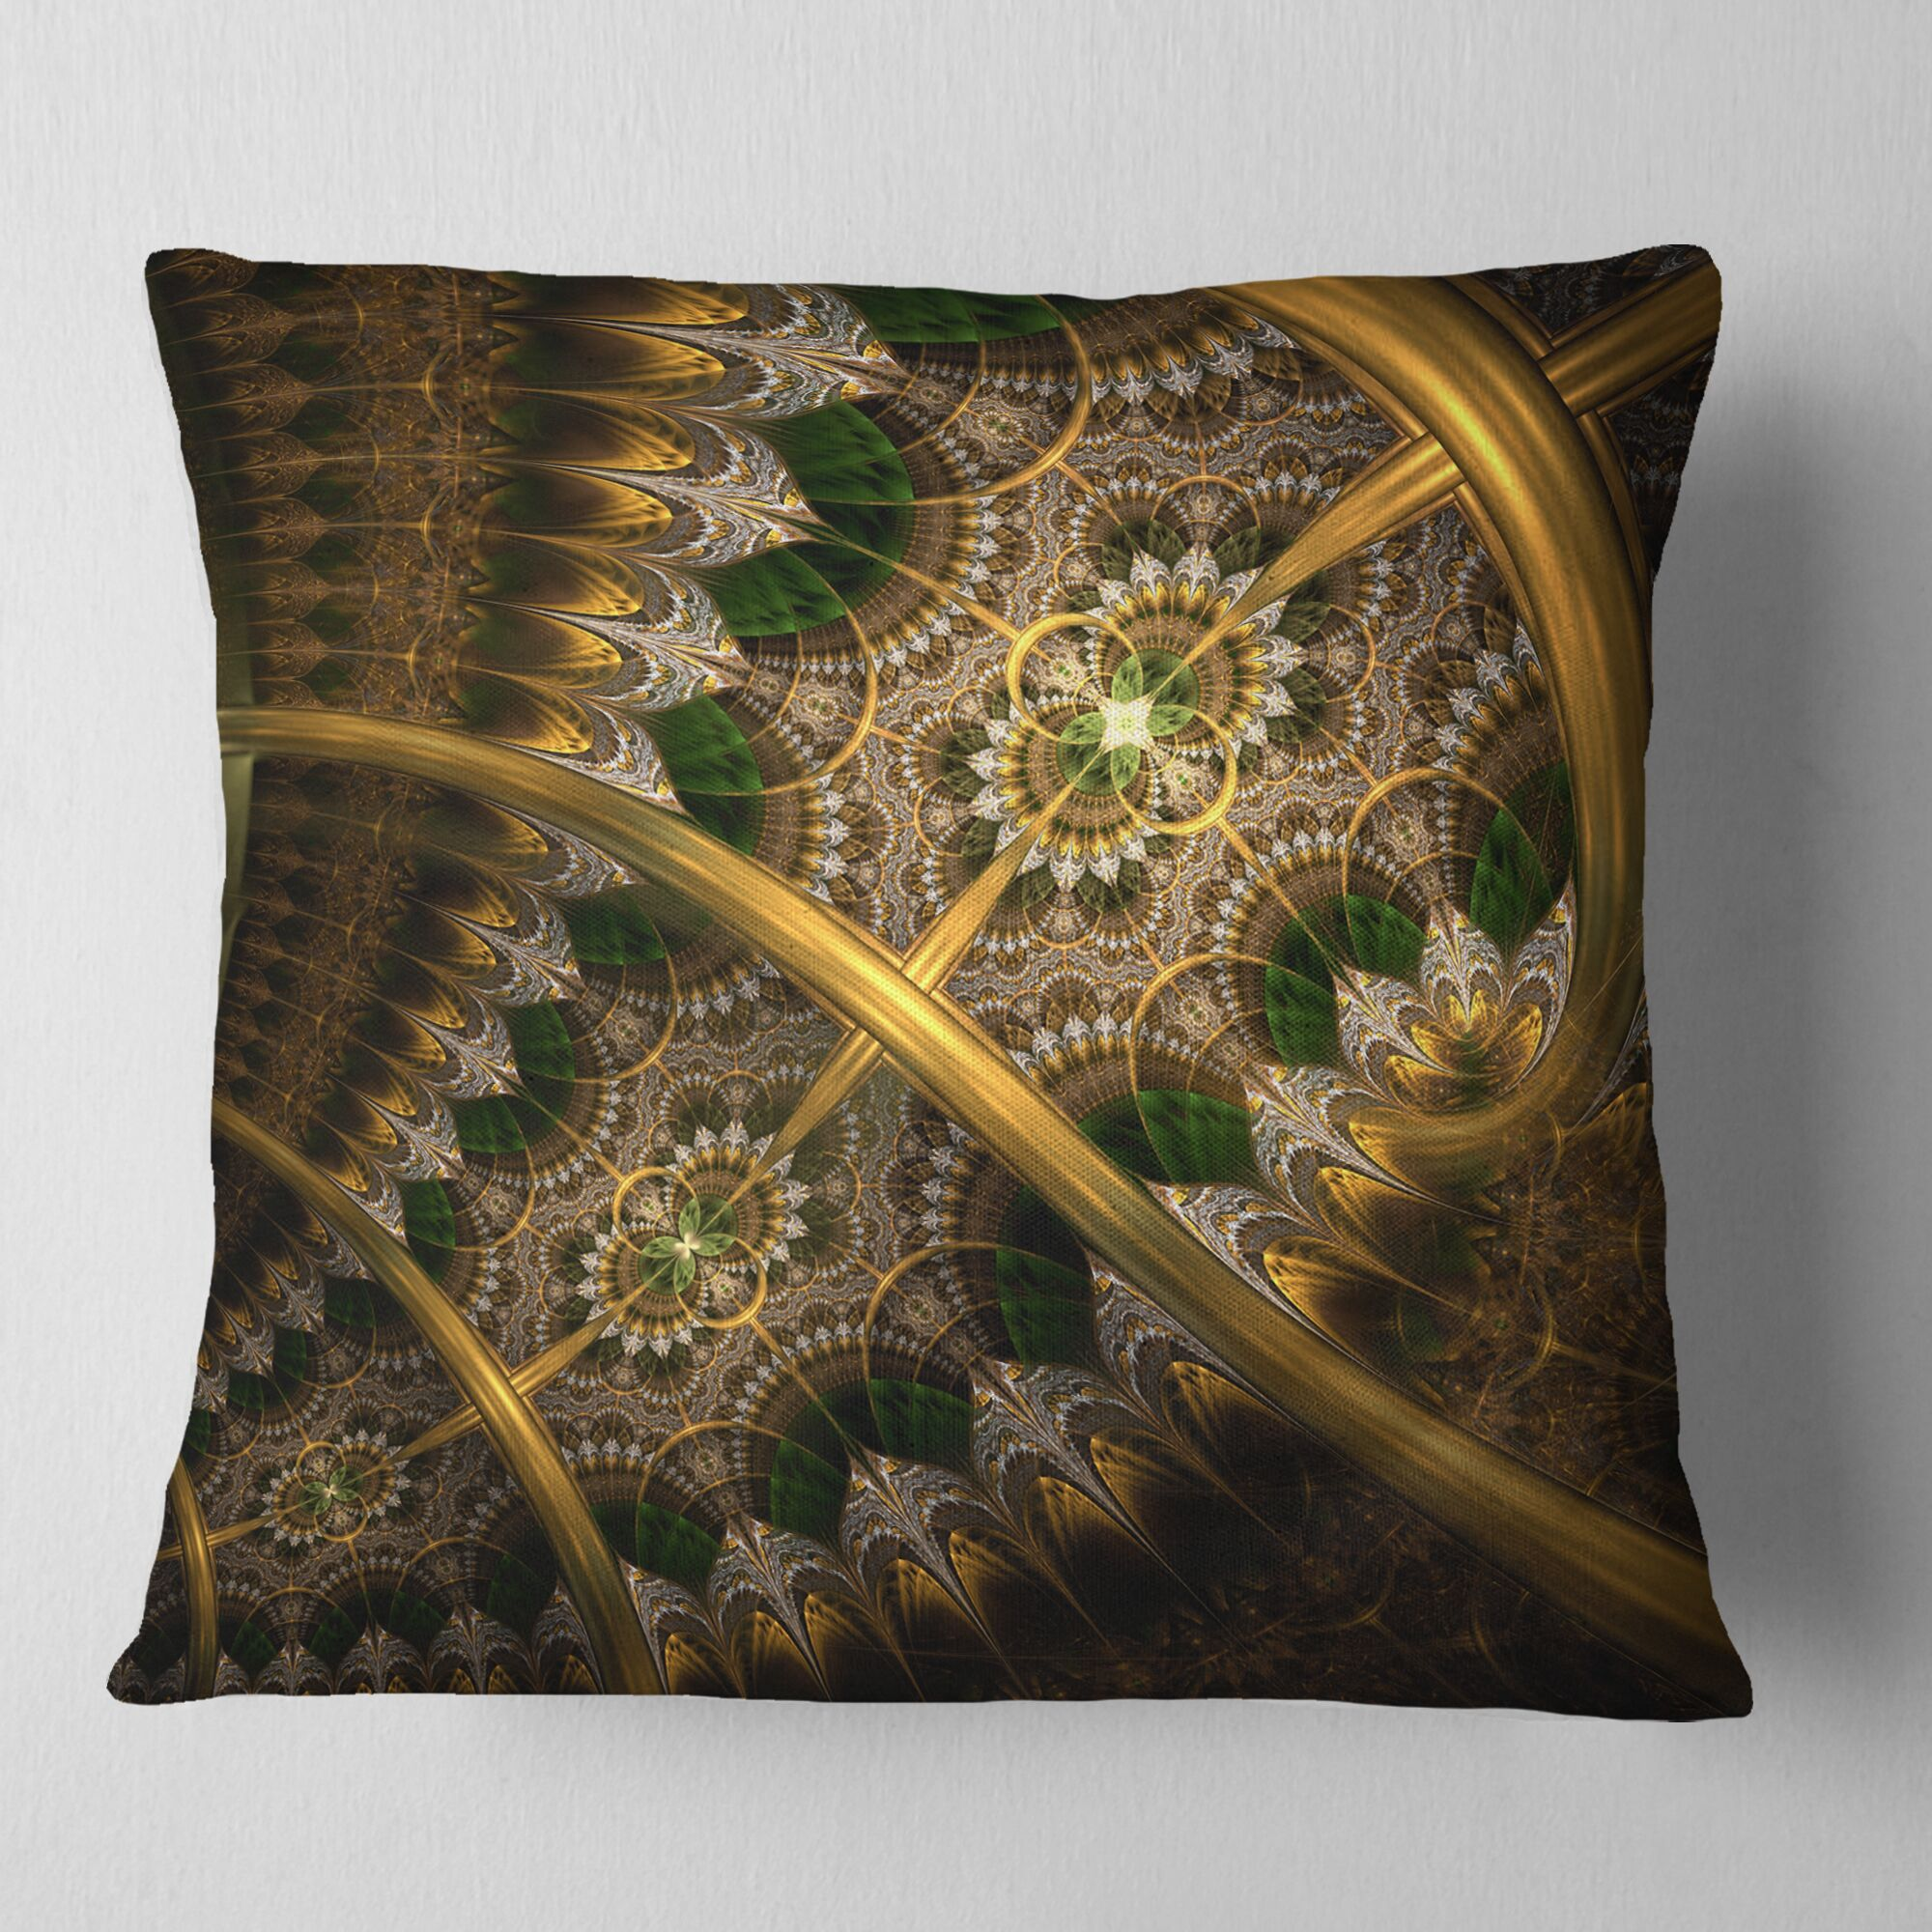 Abstract Fractal Flower Pillow Size: 16